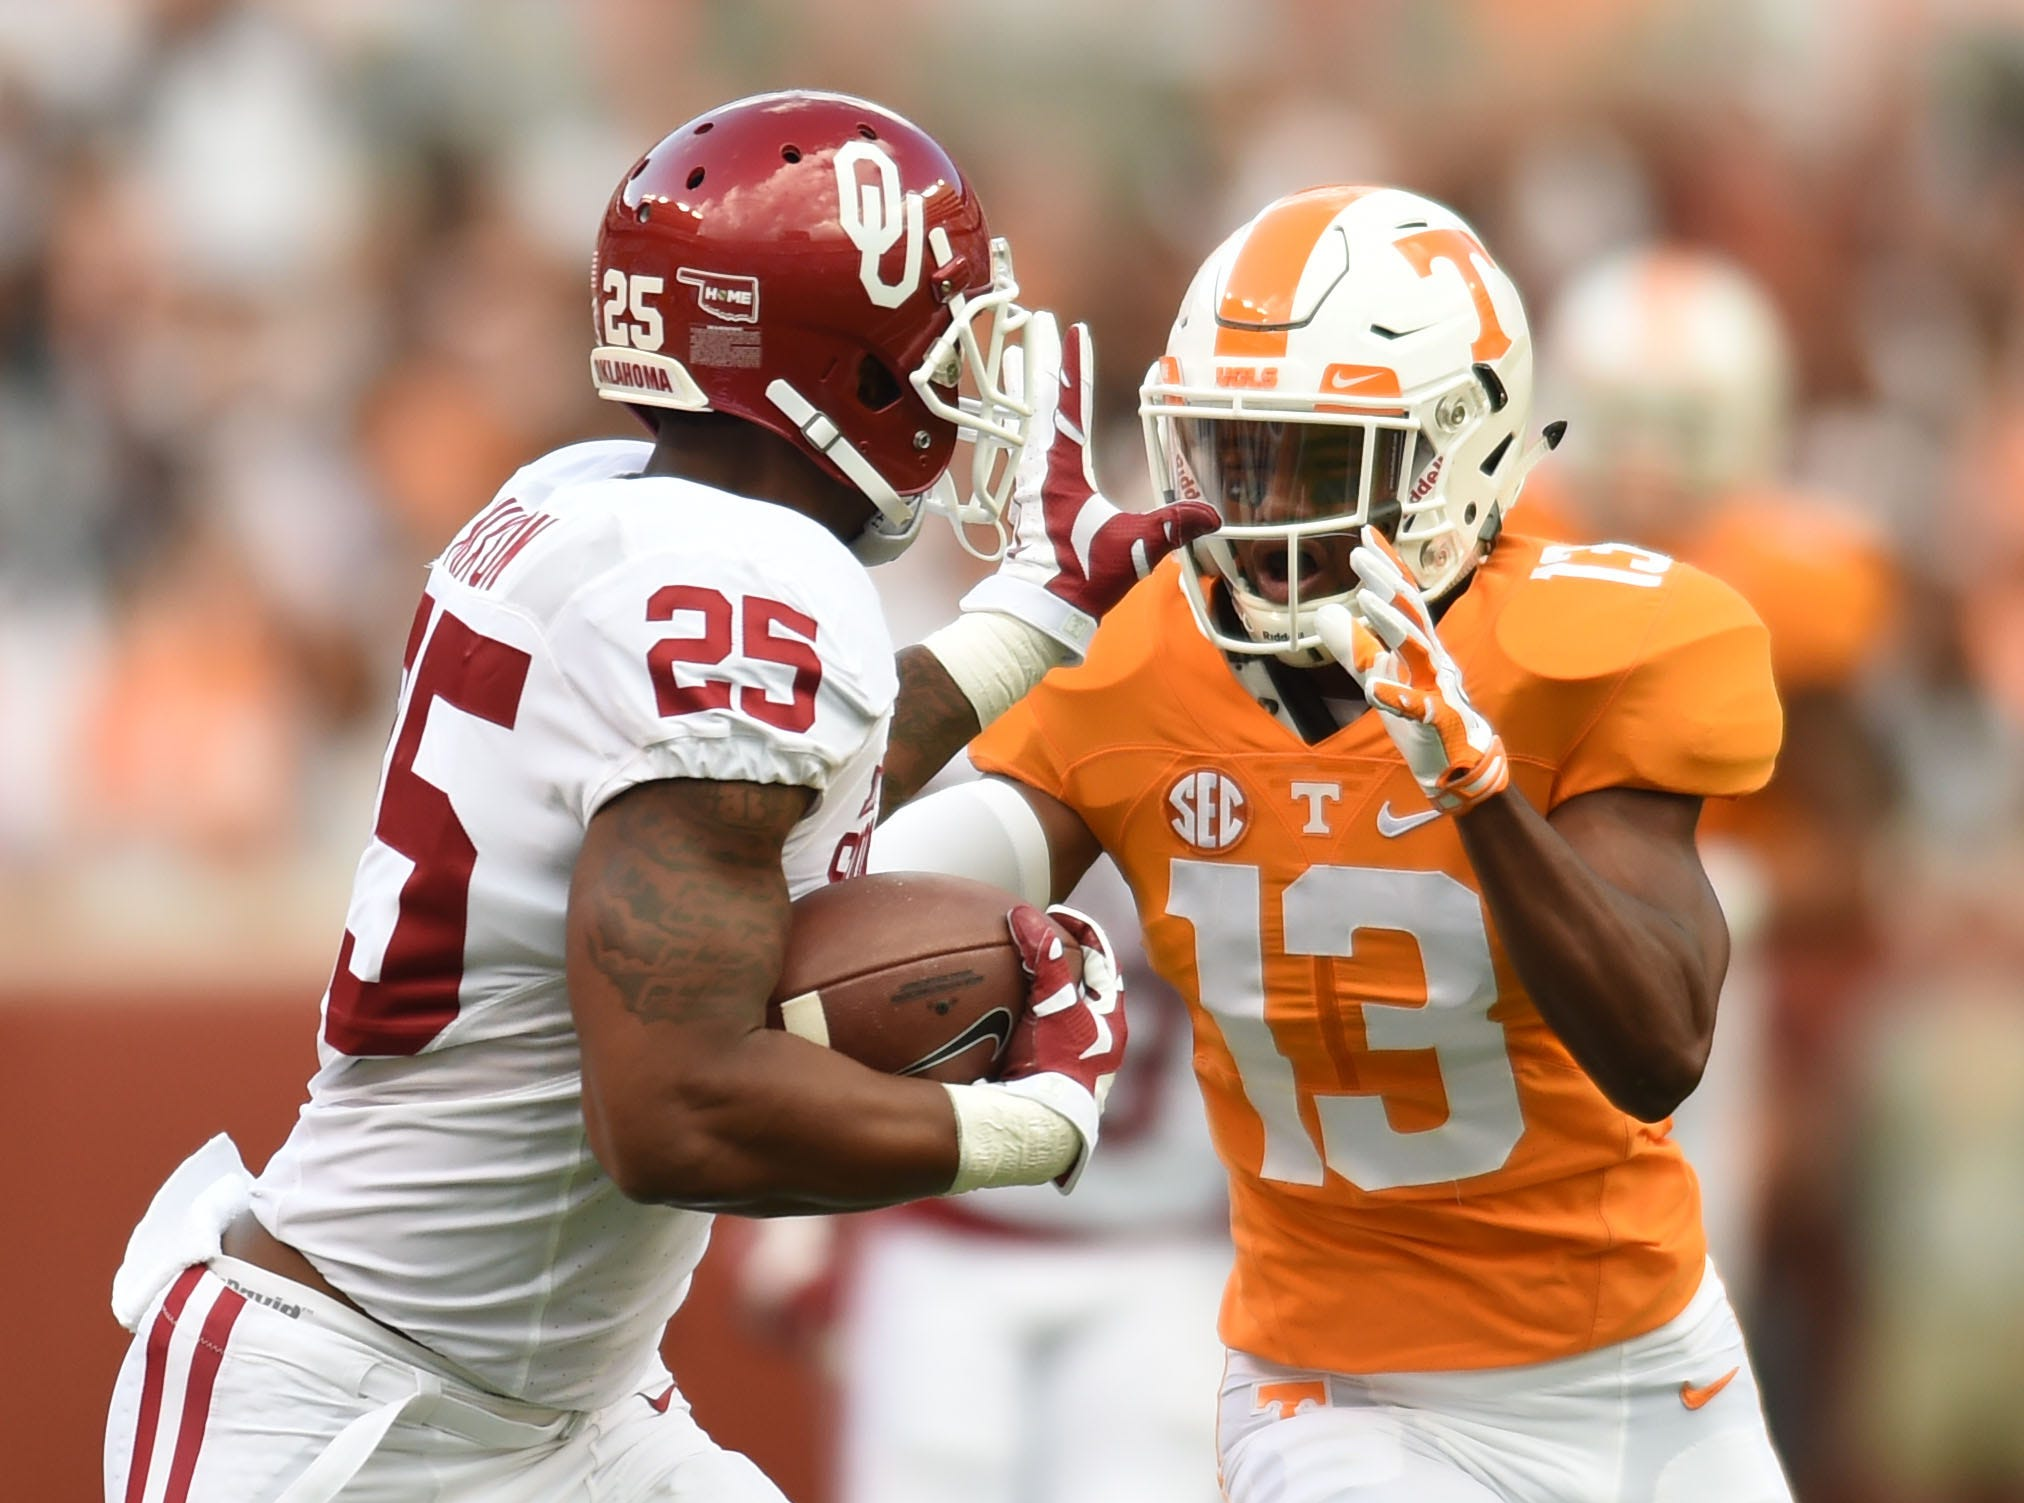 Oklahoma running back Joe Mixon (25) tries to move past Tennessee defensive back Malik Foreman (13) during the first half at Neyland Stadium on Saturday, Sept. 12, 2015 in Knoxville, Tenn.